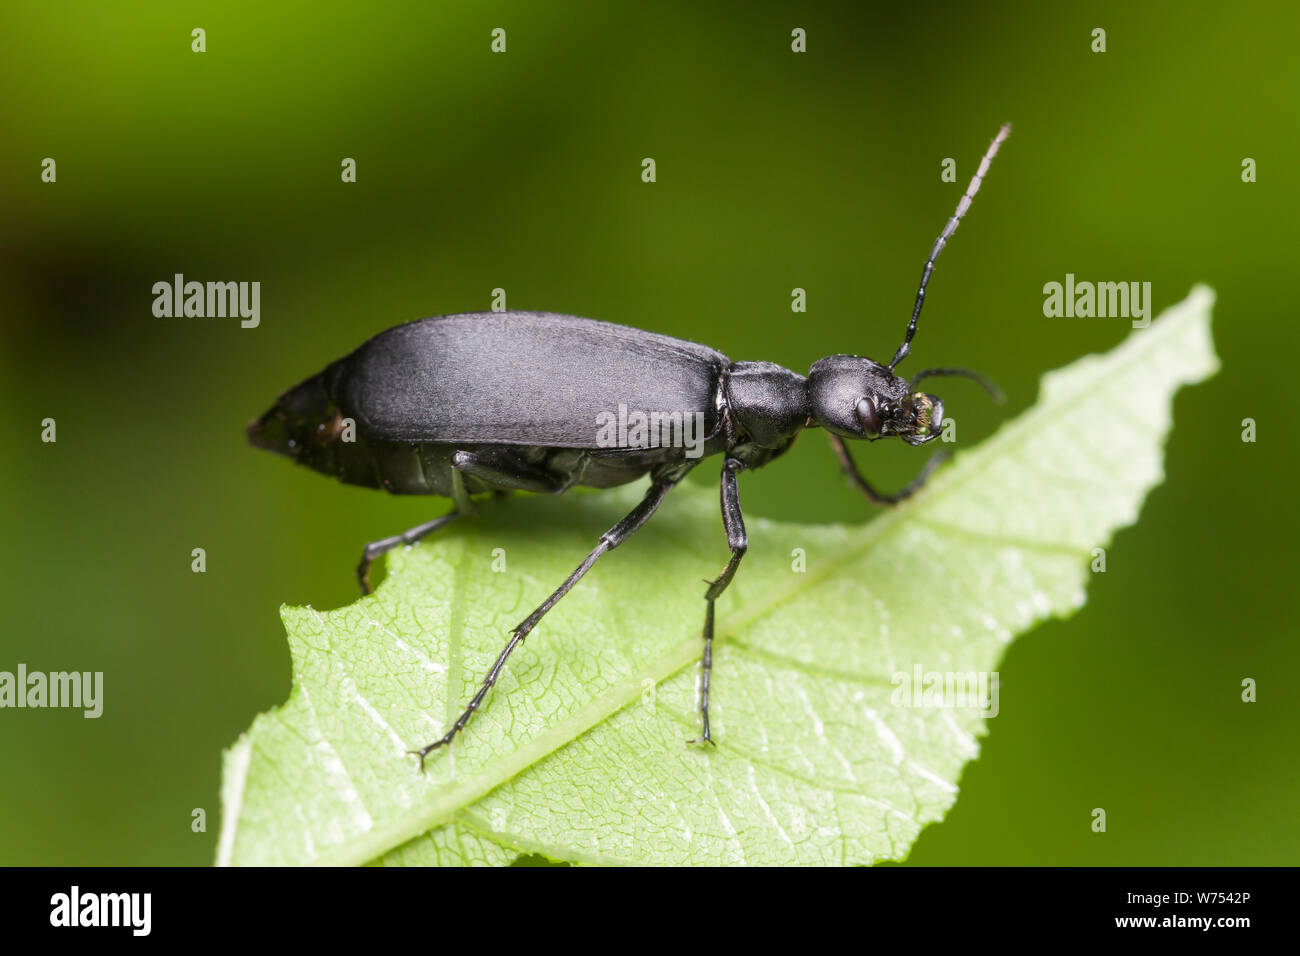 Blister Beetle Stock Photos & Blister Beetle Stock Images